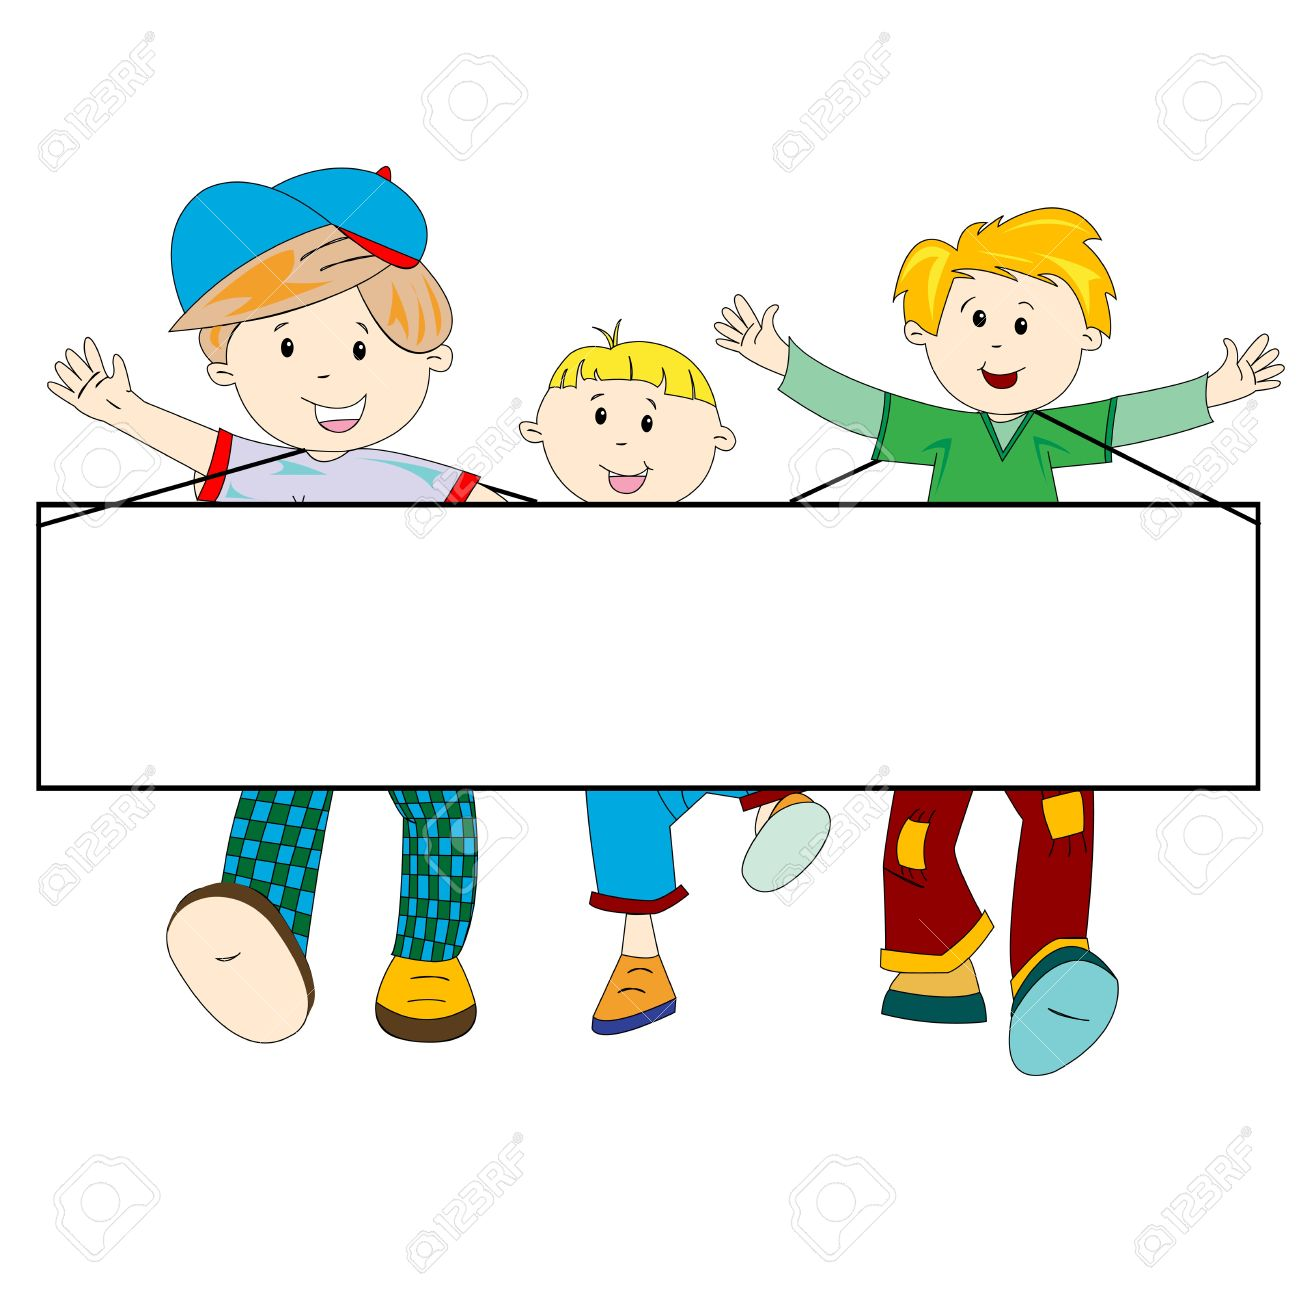 happy kids cartoon with blank banner against white background, abstract art illustration Stock Photo - 7322604